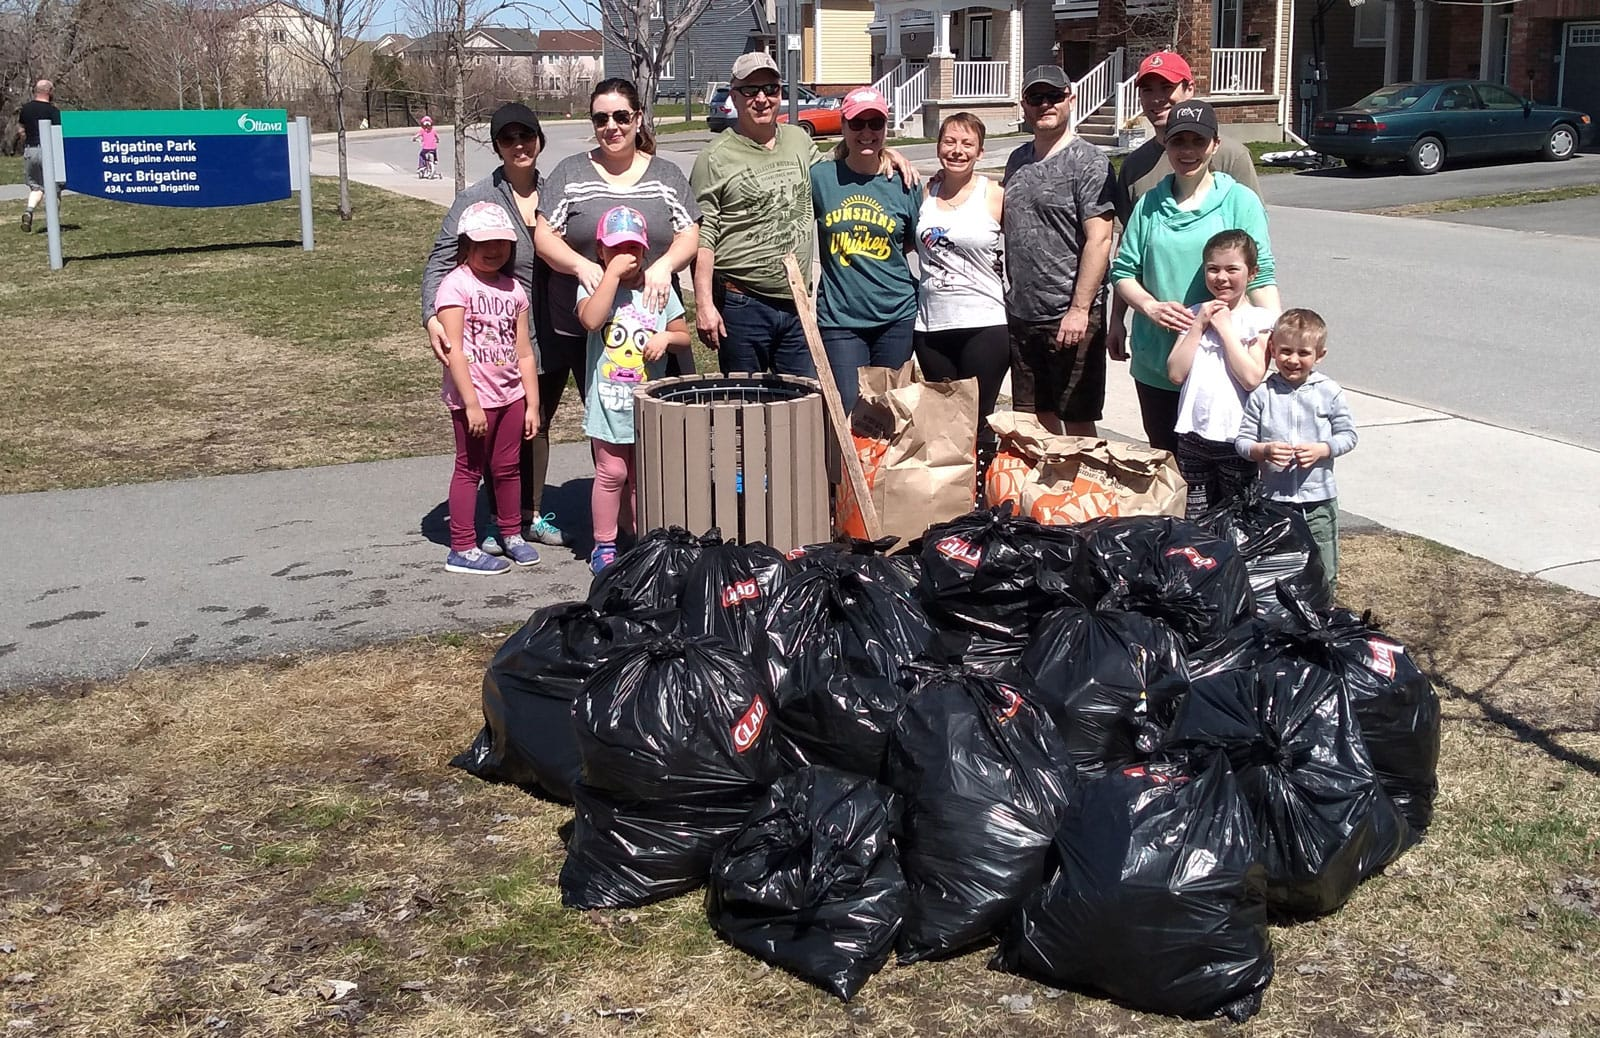 Cleaning up at Brigatine Park